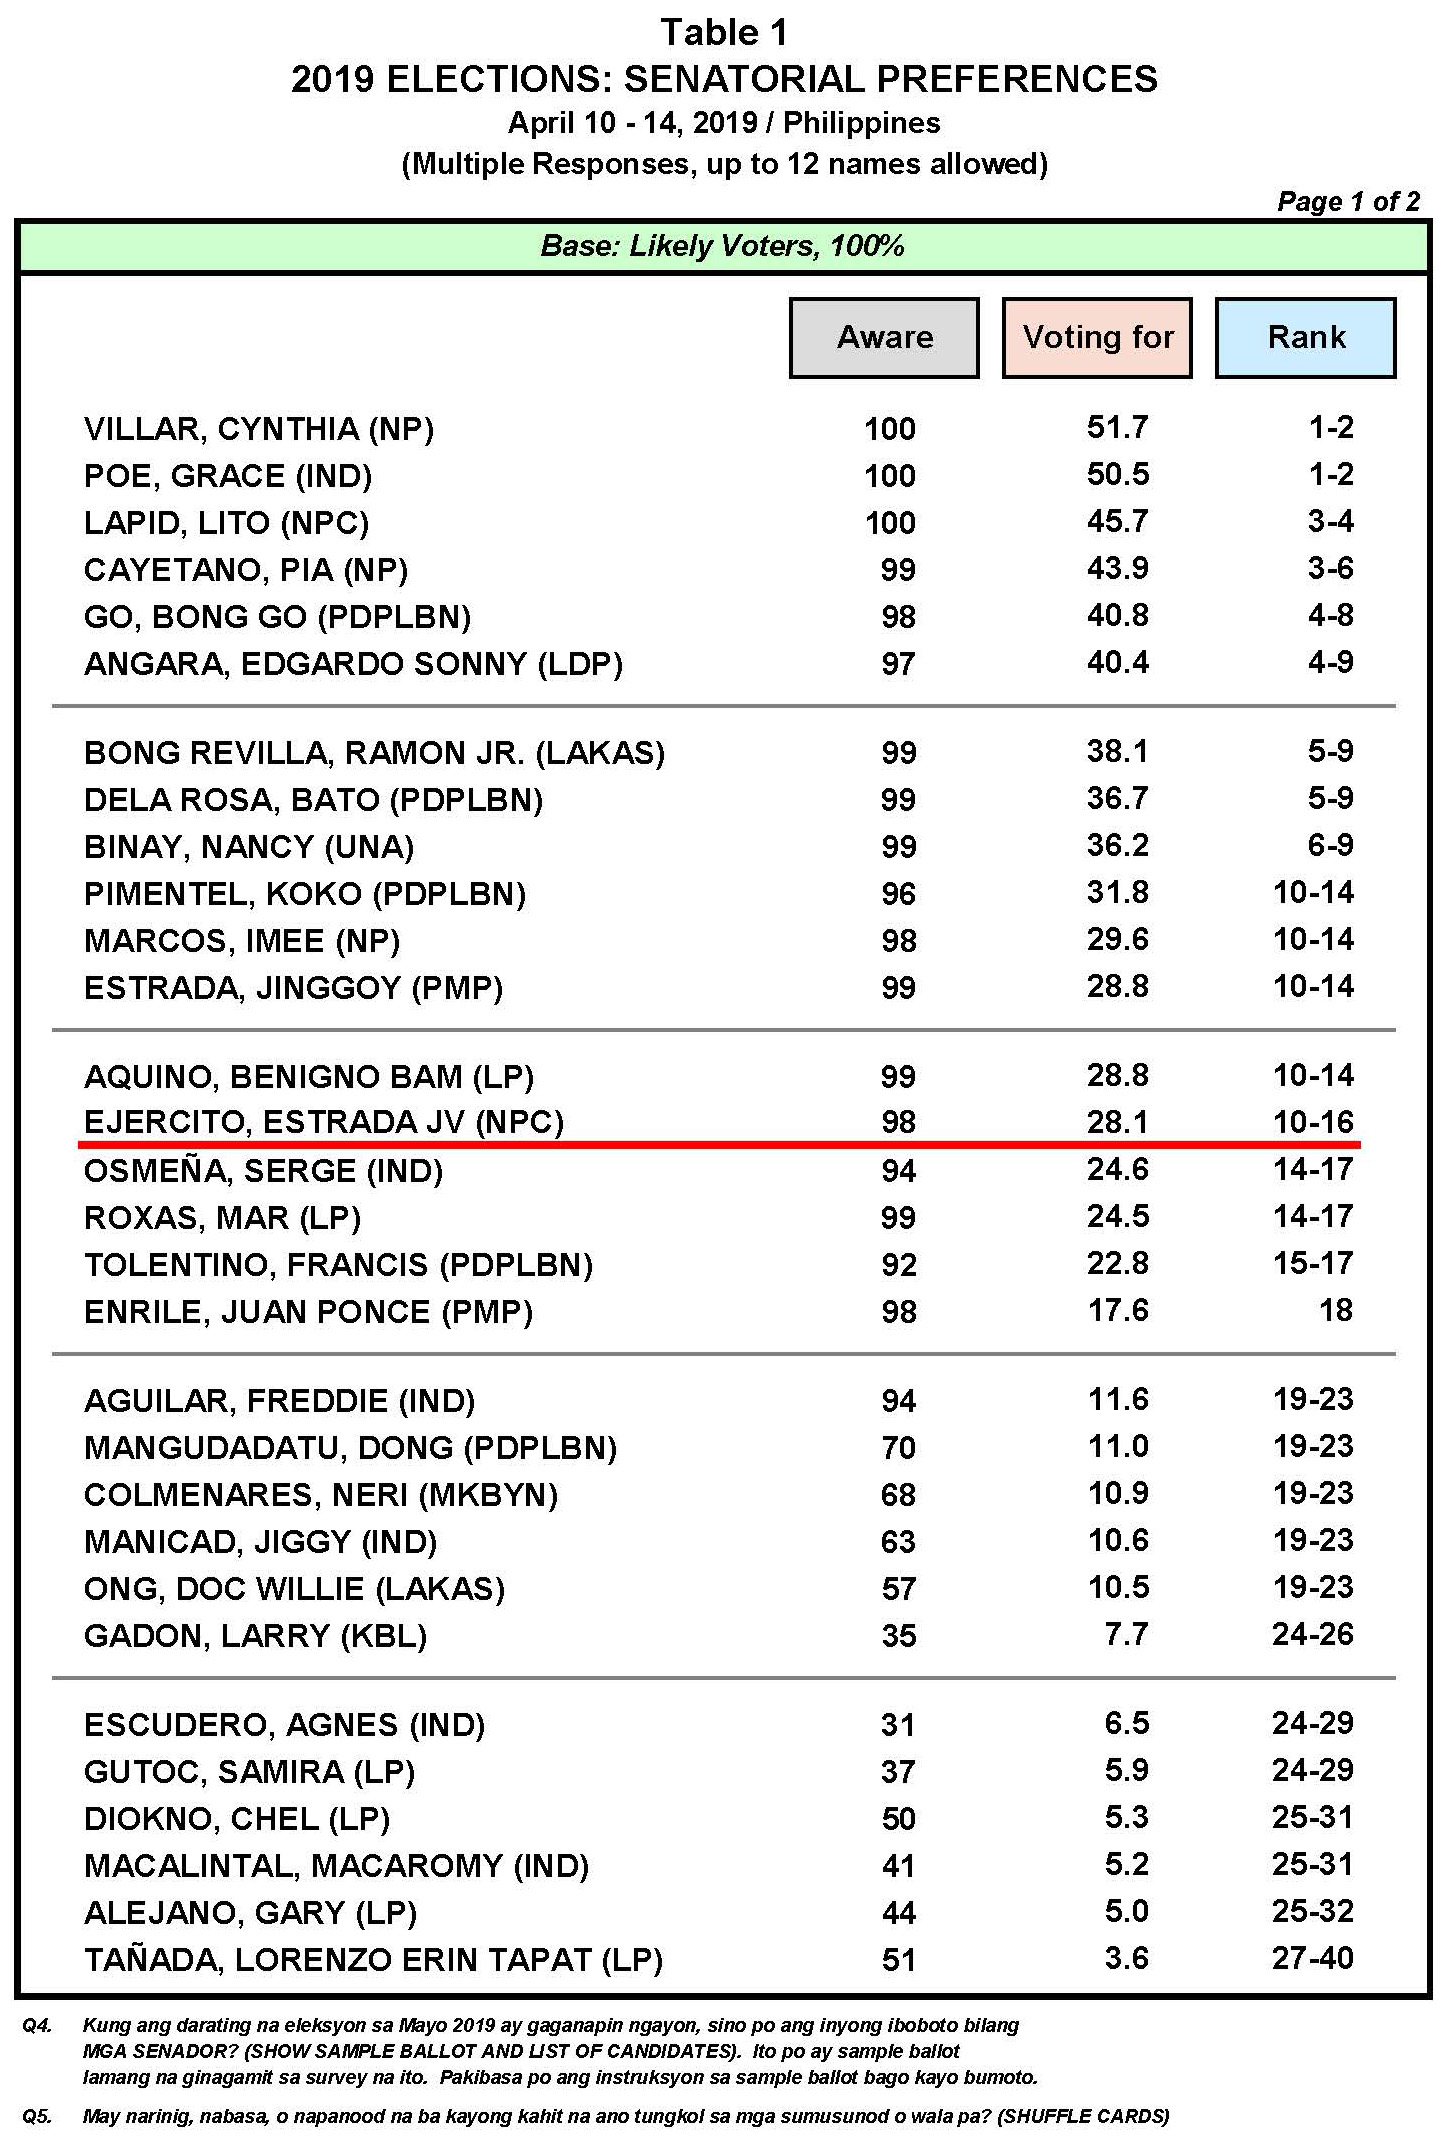 April 2019 Nationwide Survey on the May 2019 Senatorial Elections